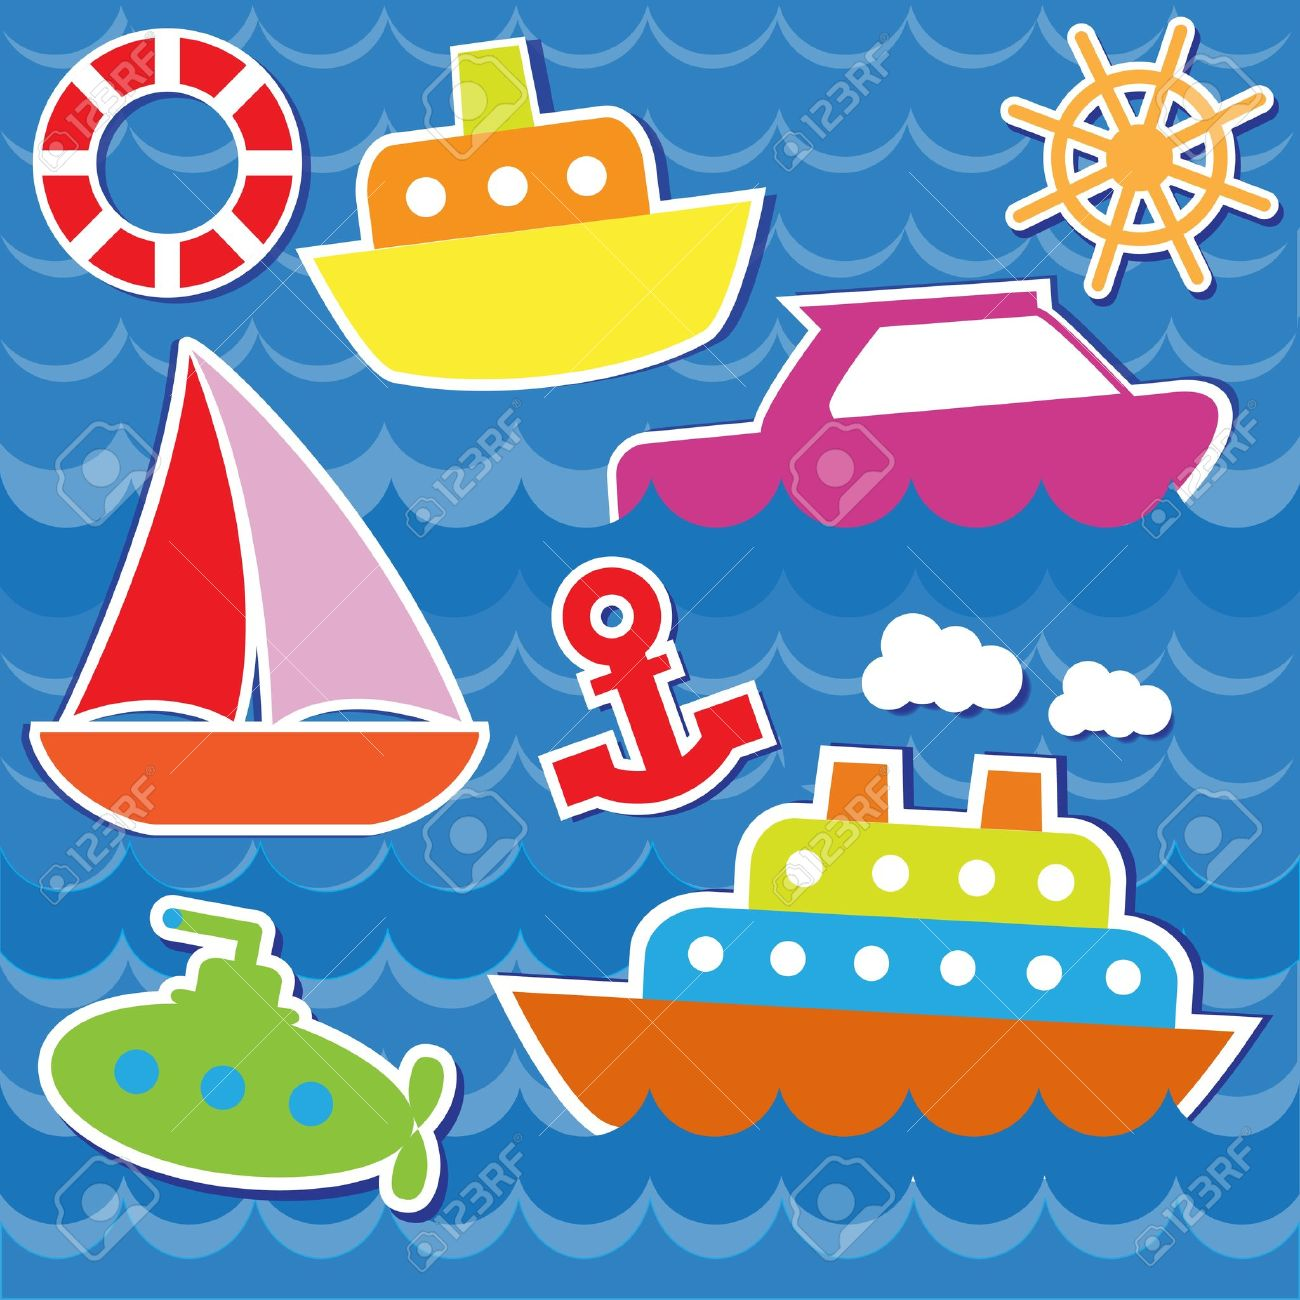 Marine transport stickers. Stock Vector - 13963318